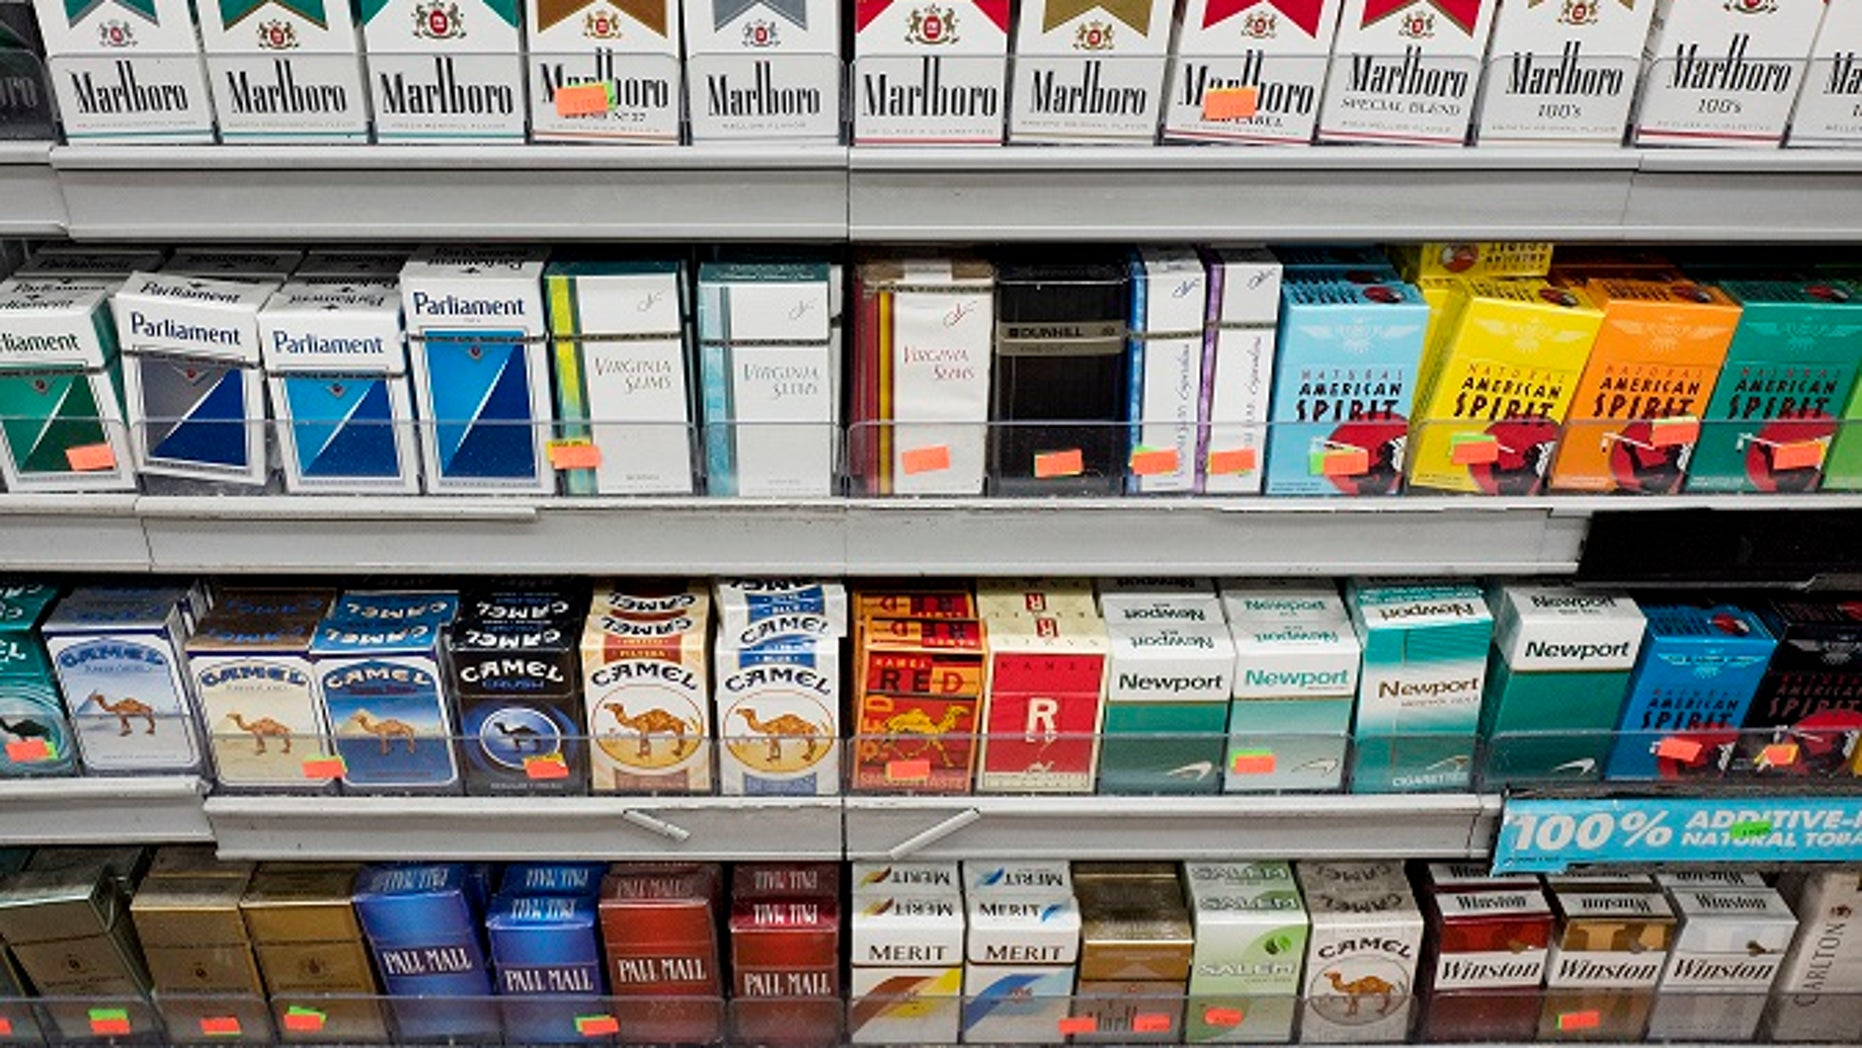 New York City will became the most expensive place to buy cigarettes in the United States next year.